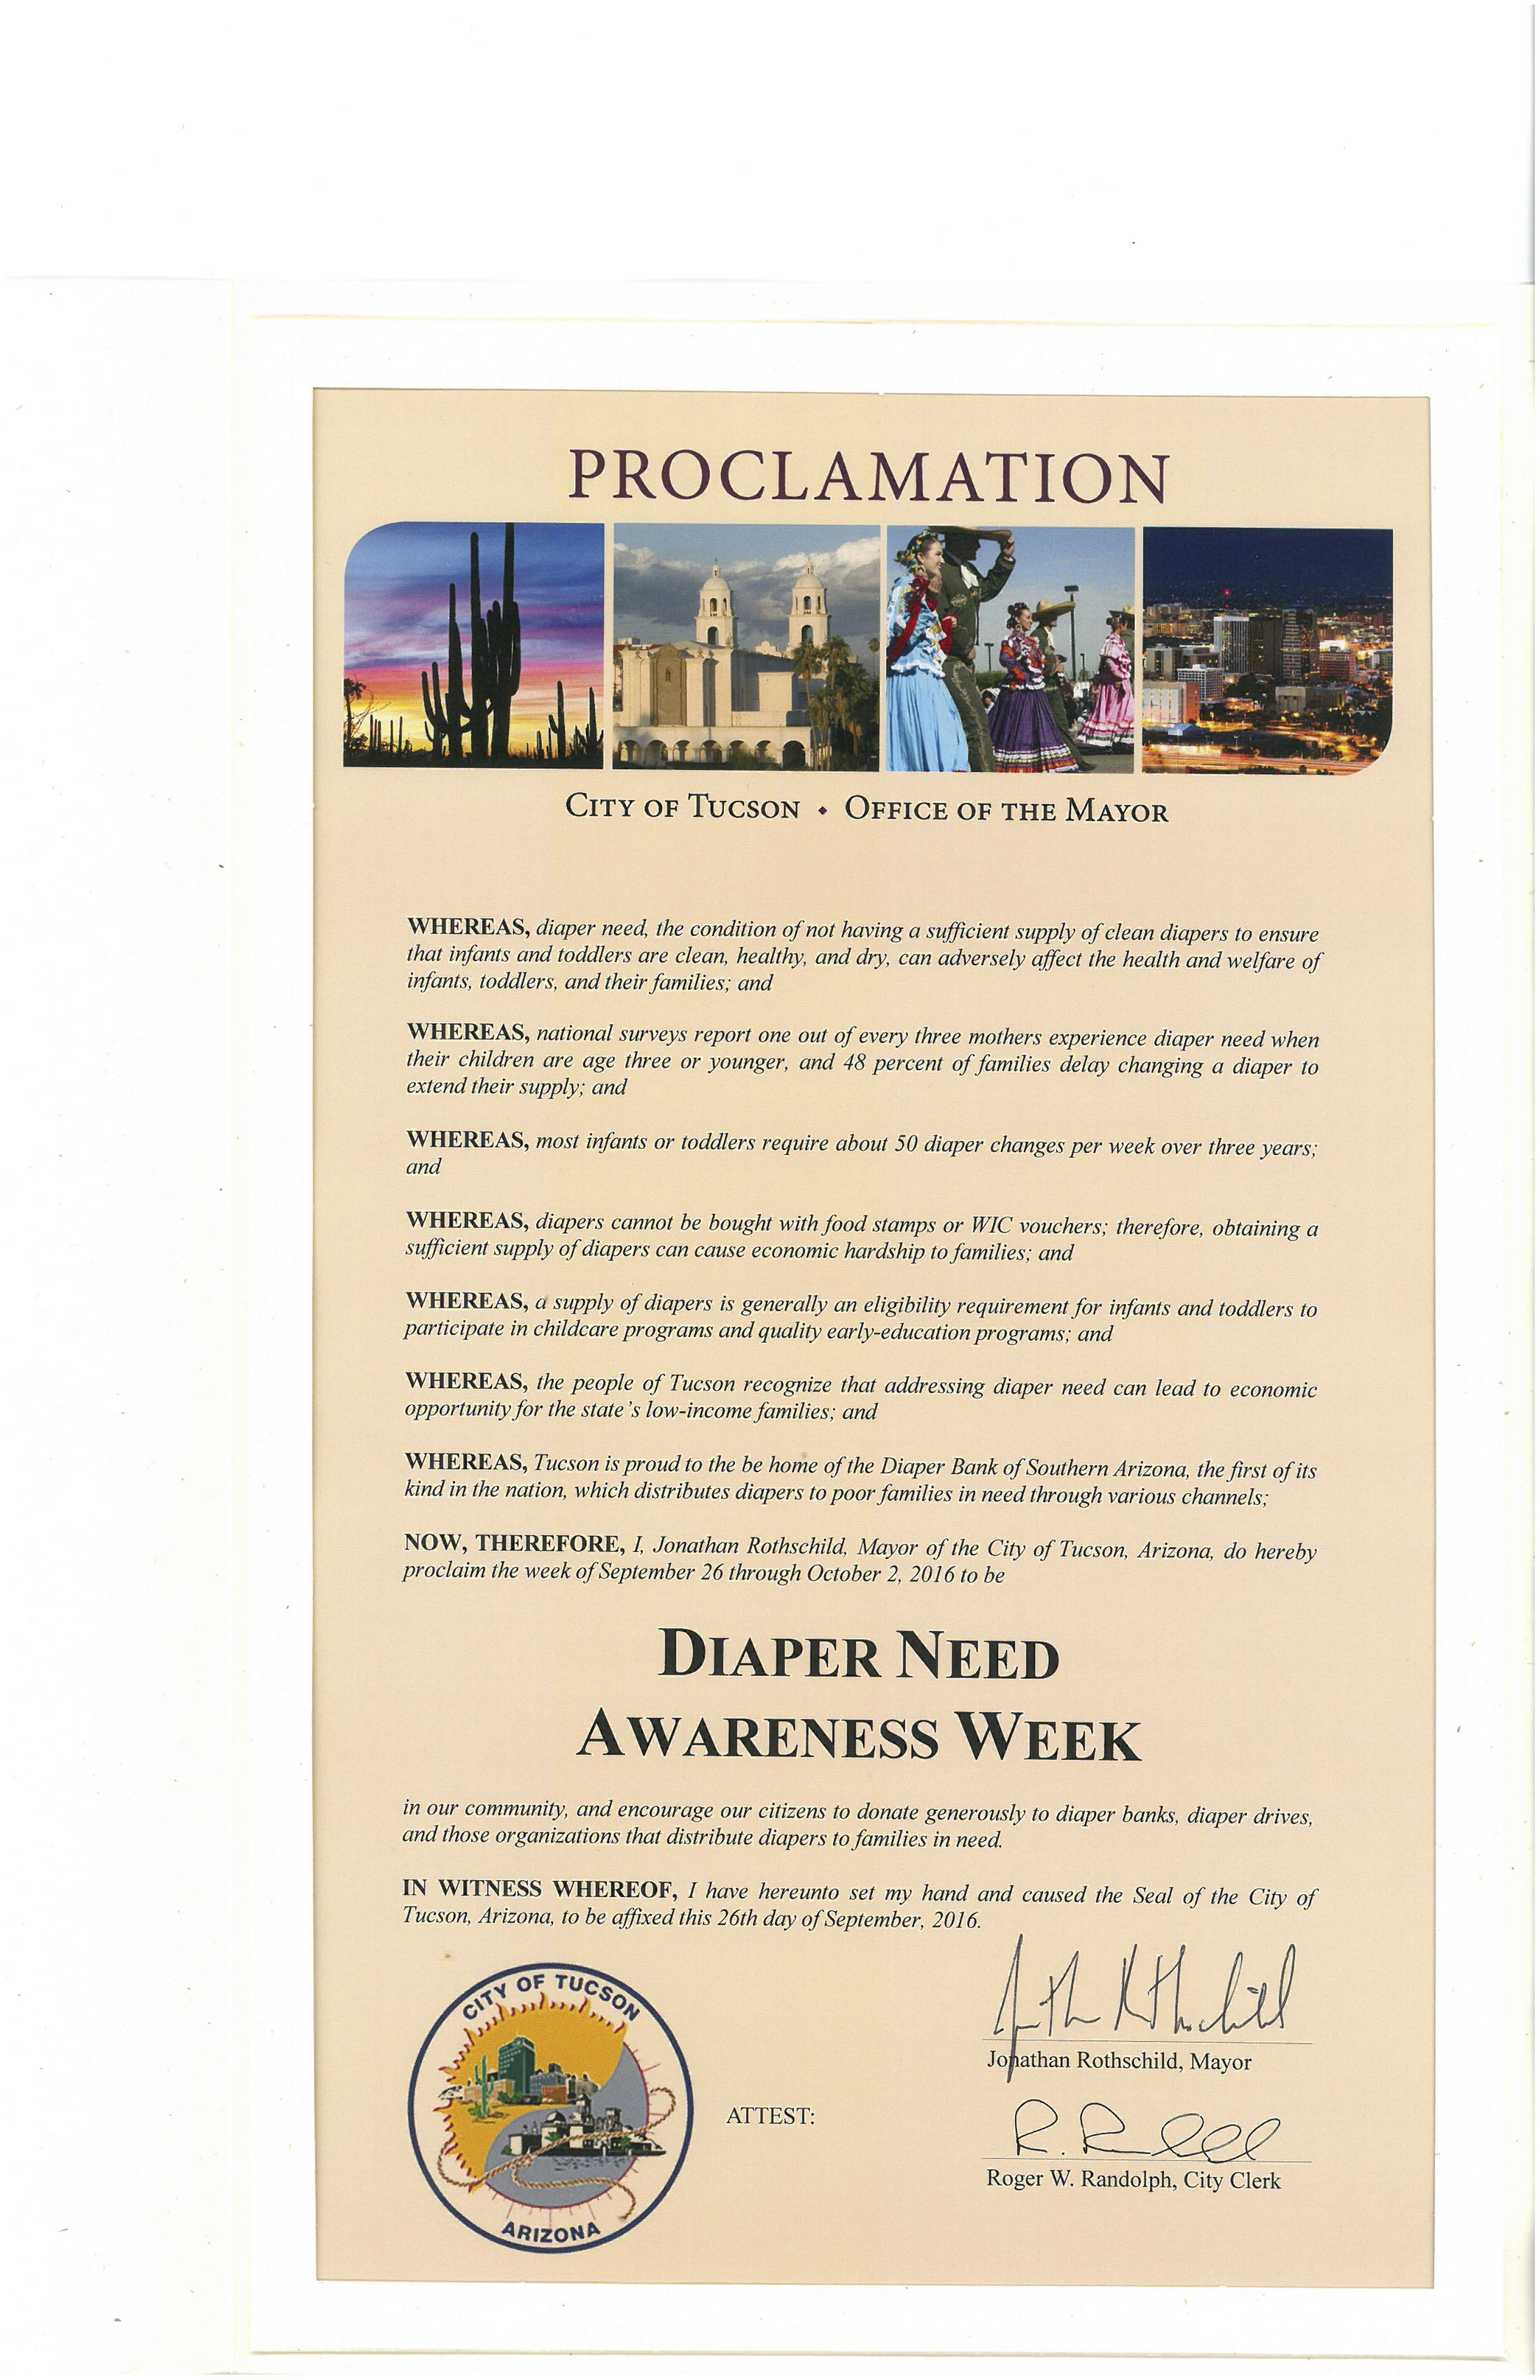 TUCSON, AZ - Mayoral proclamation recognizing Diaper Need Awareness Week (Sep. 26 - Oct. 2, 2016) #diaperneed diaperneed.org